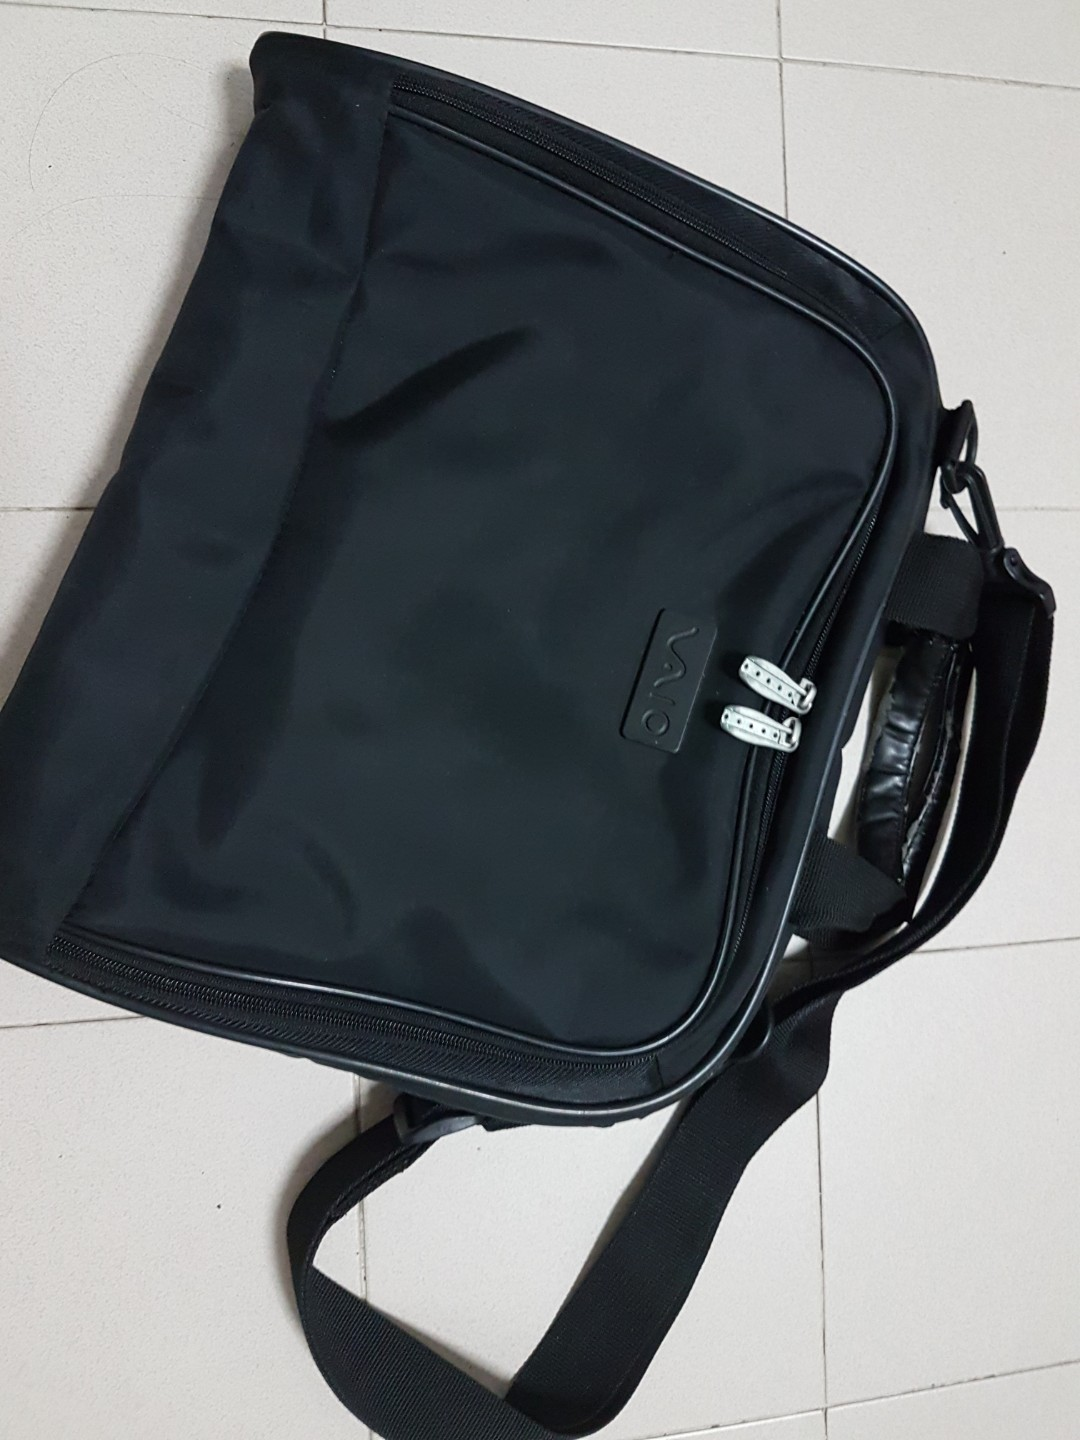 09254f21fca7 Vaio notebook bag for 13 to 14